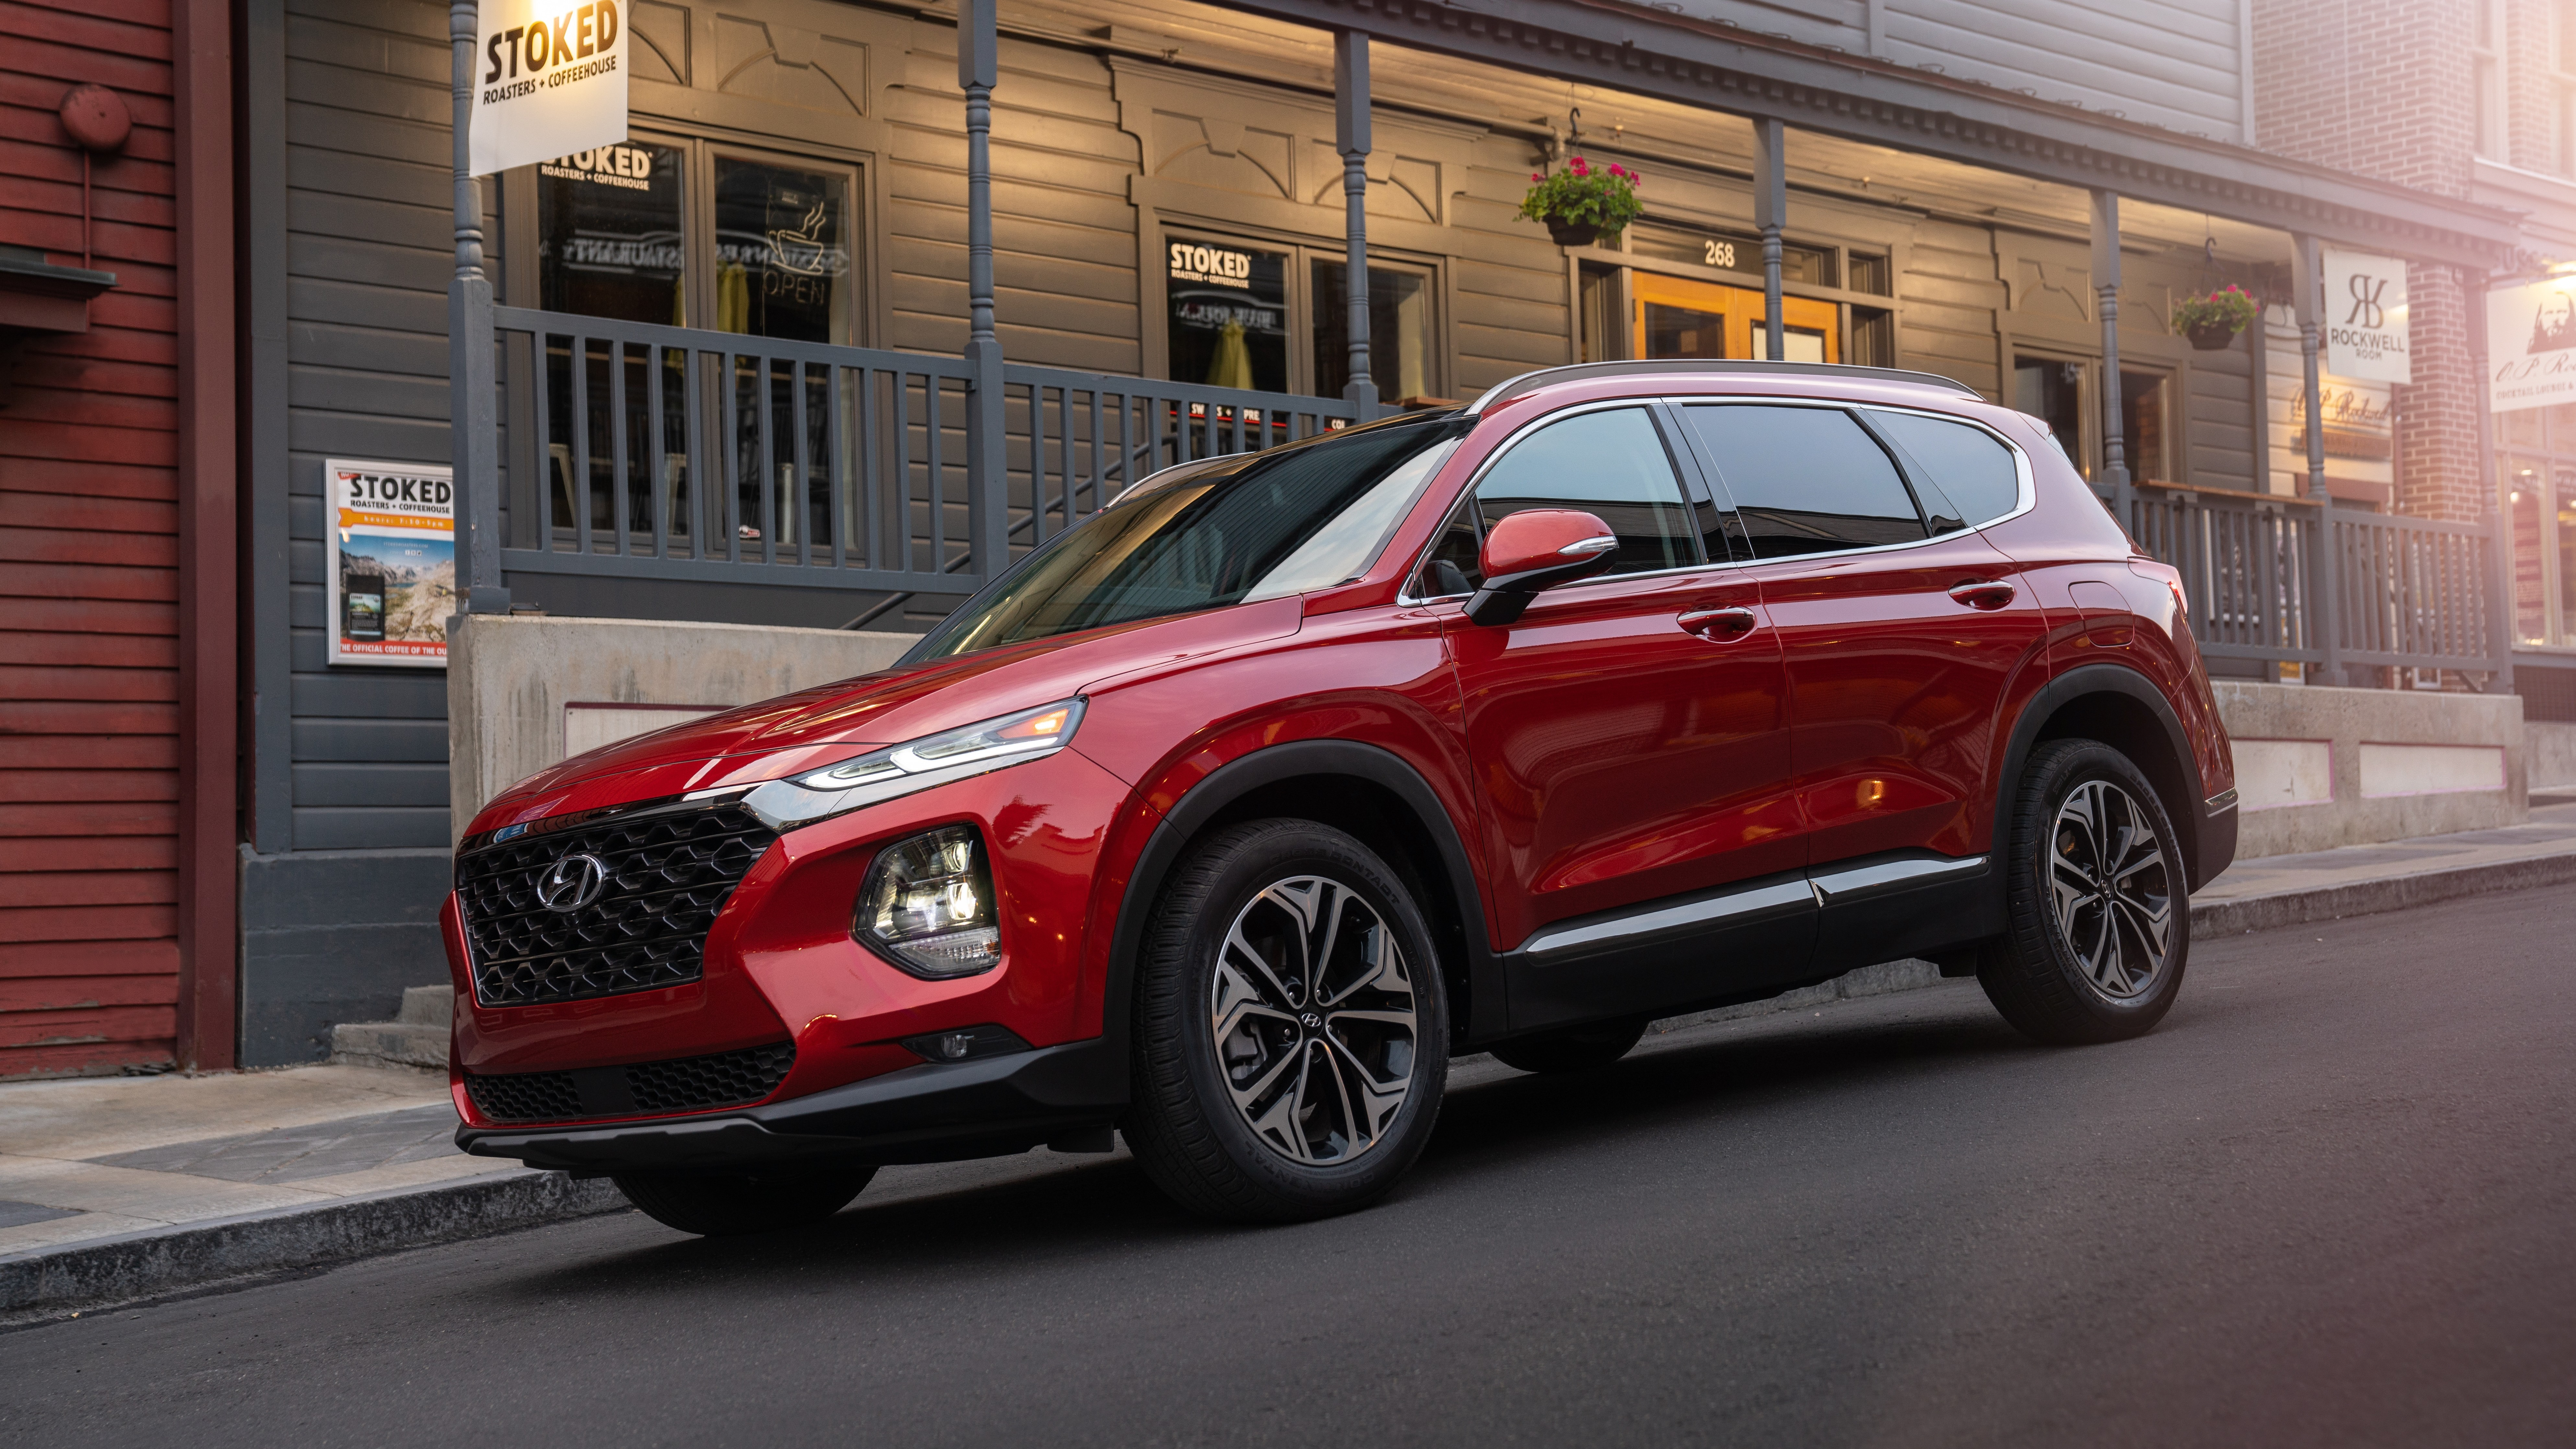 Why passengers can't make a quick exit in the 2019 Hyundai